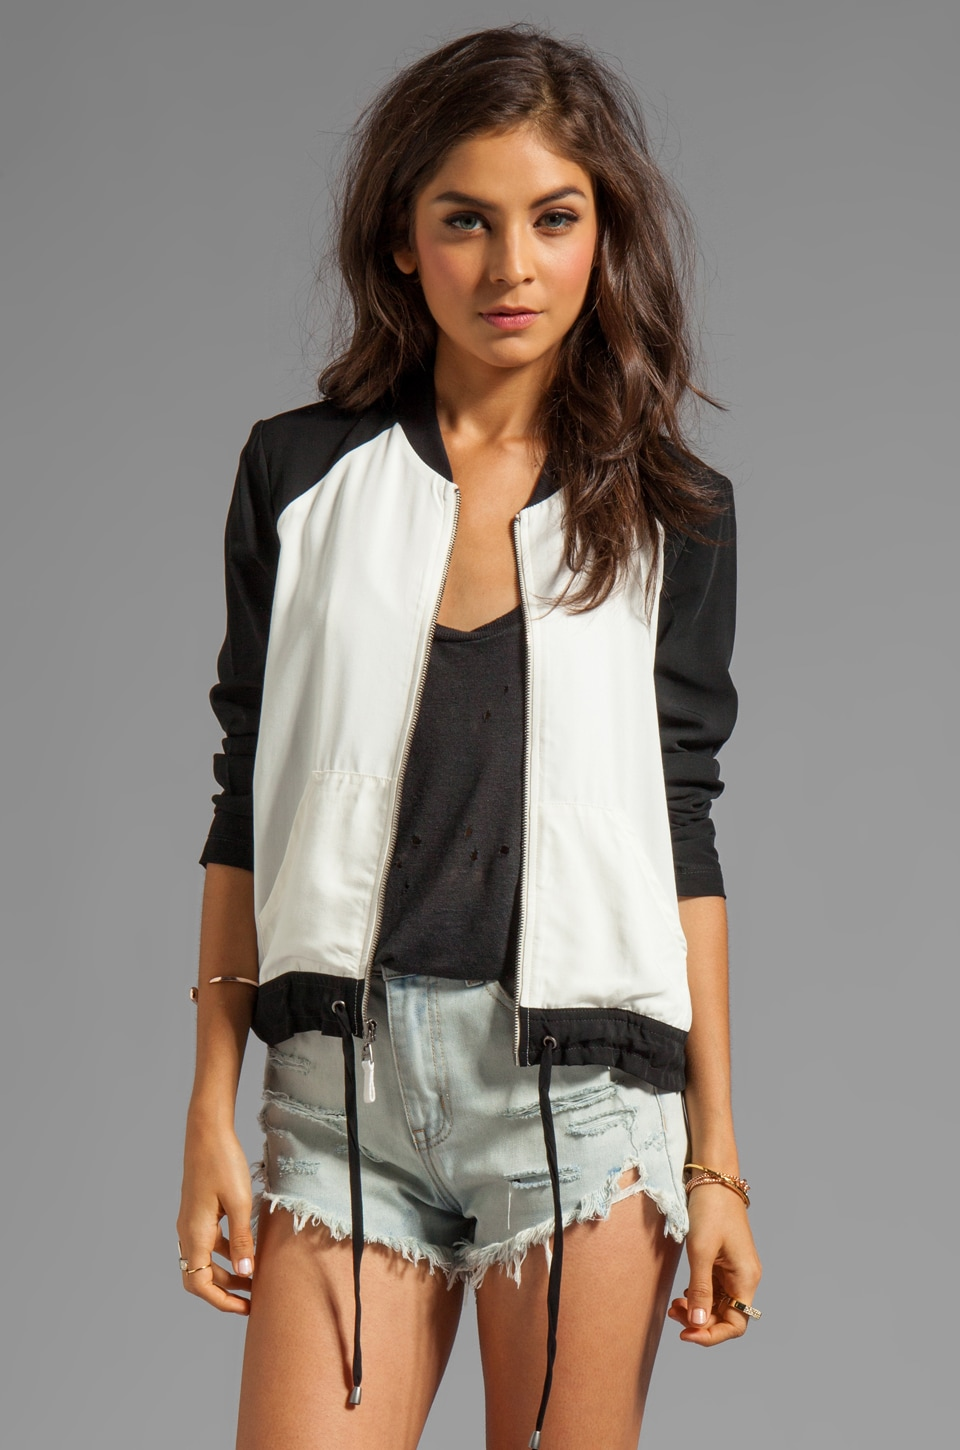 Splendid Athens Colorblocked Jacket in Sand Dollar/Black